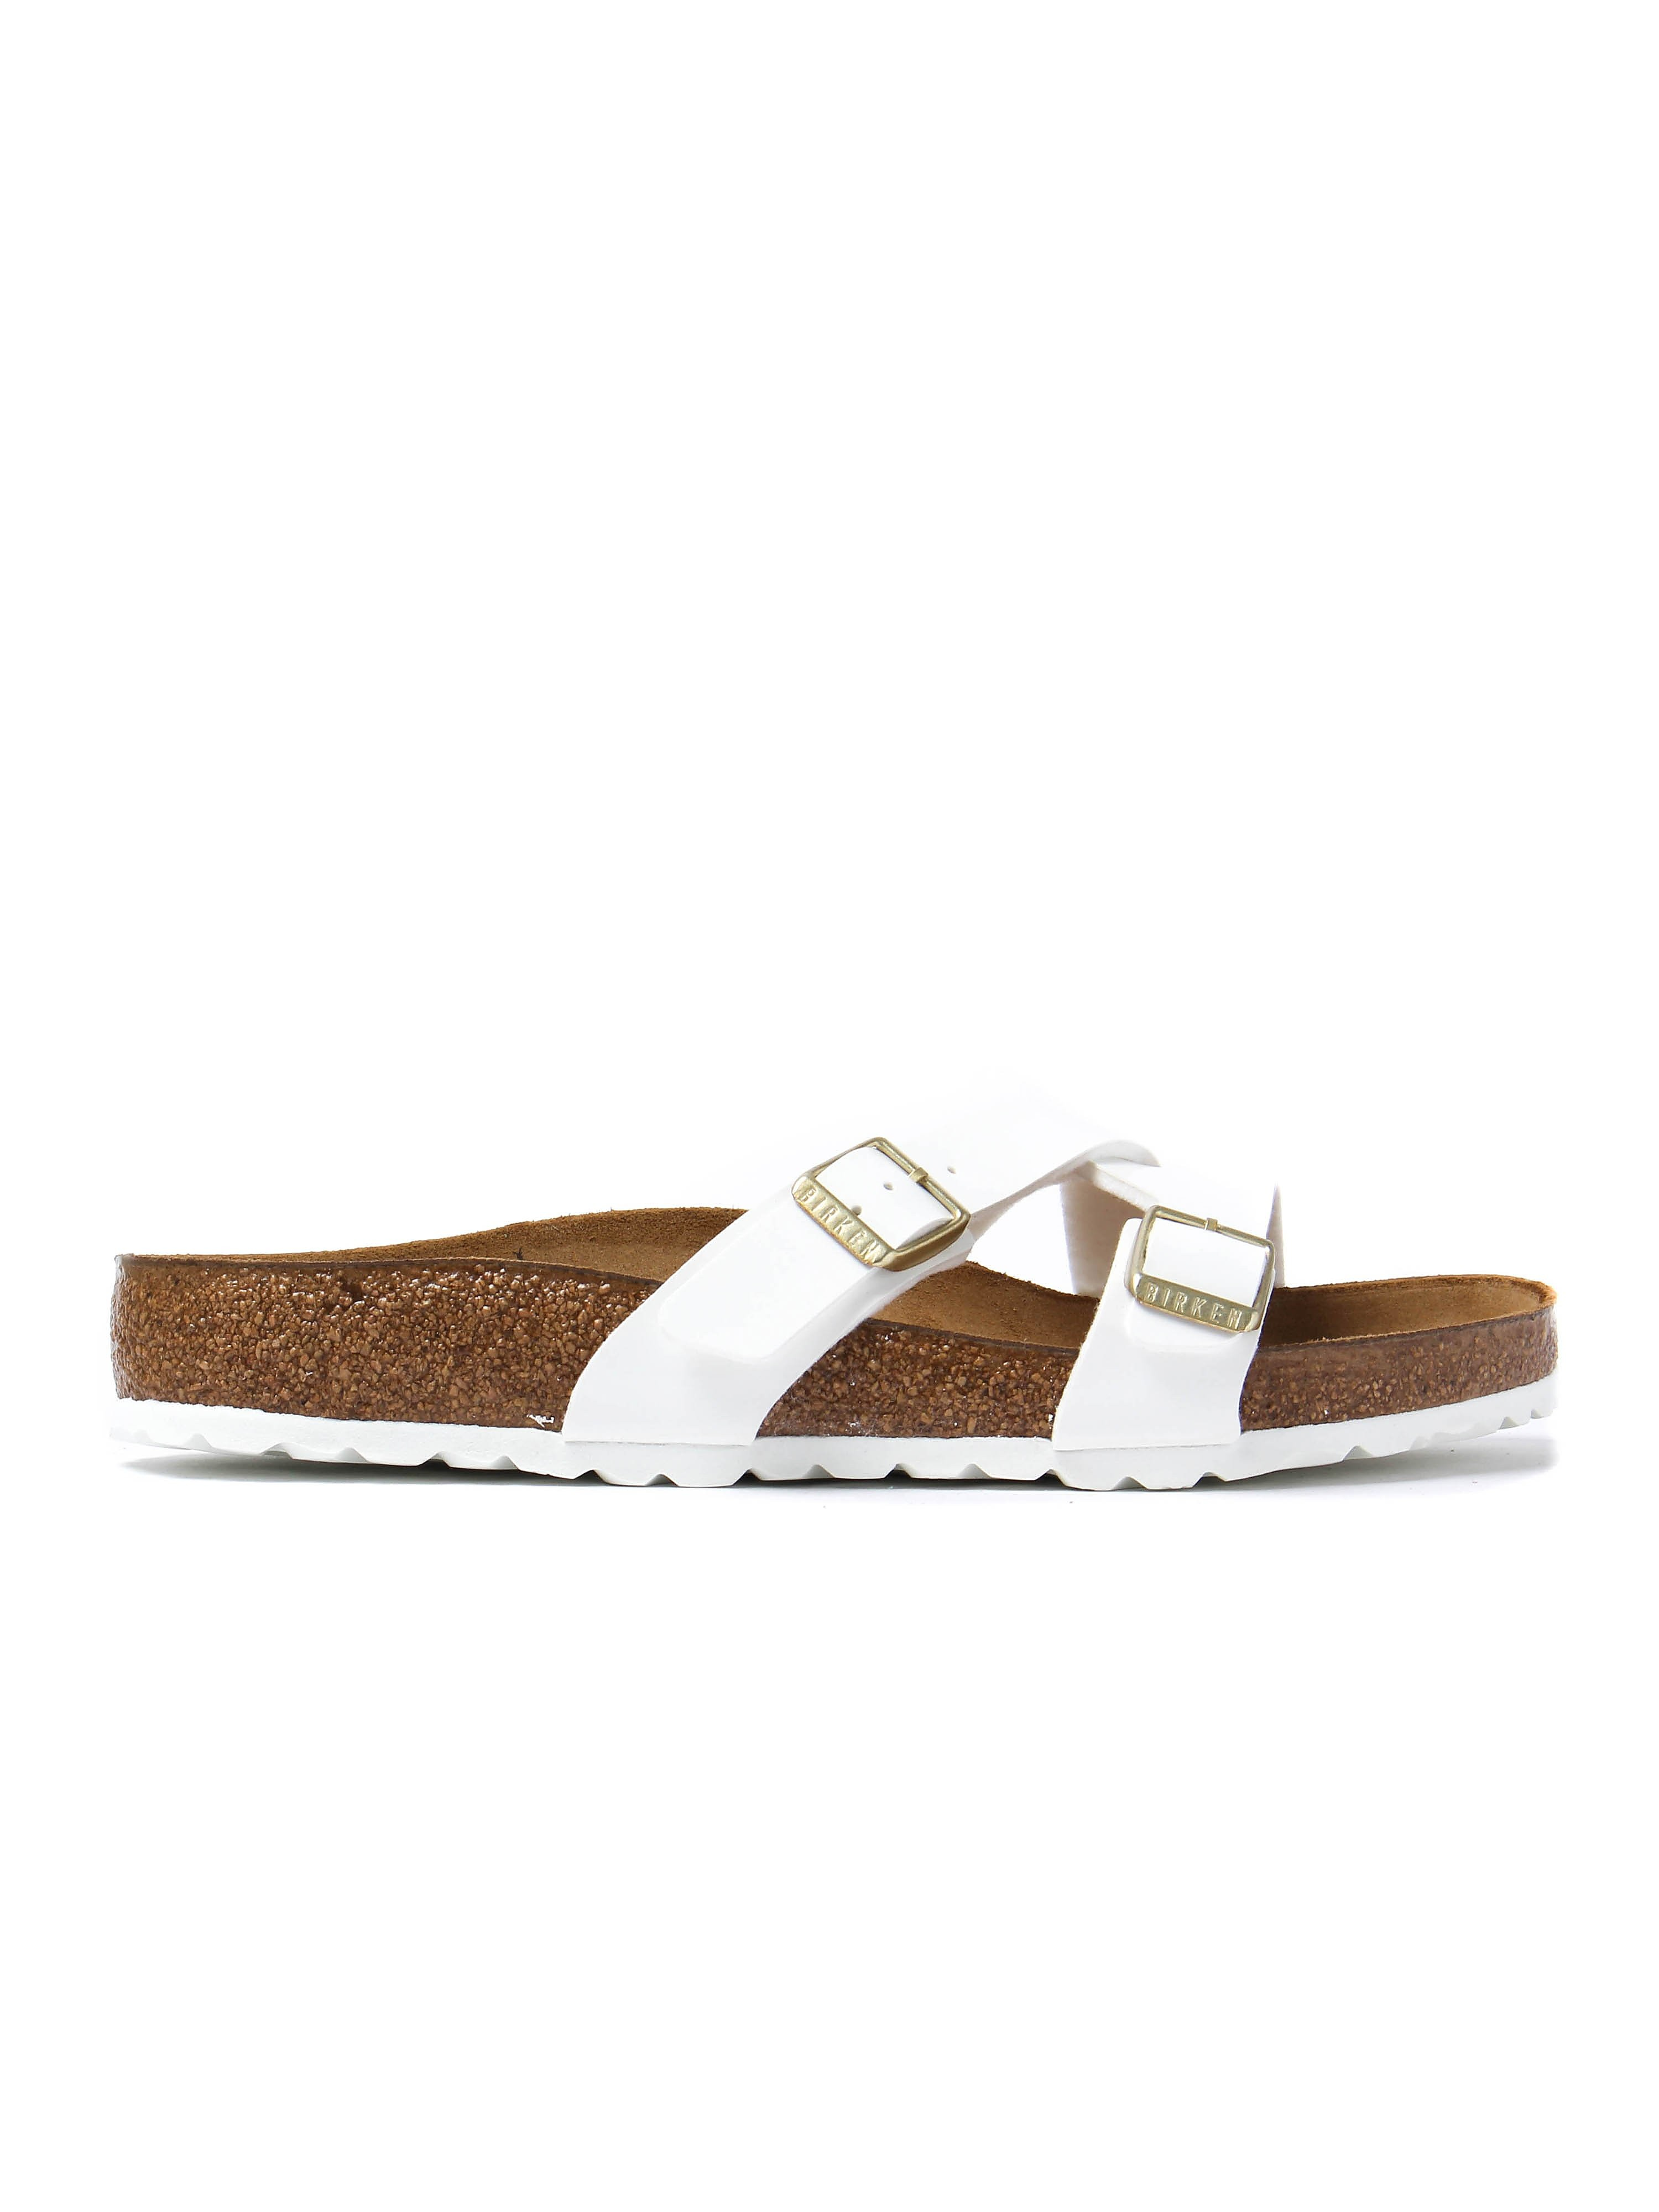 Birkenstock Women's Yao Balance Regular Fit Sandals - White Patent Leather